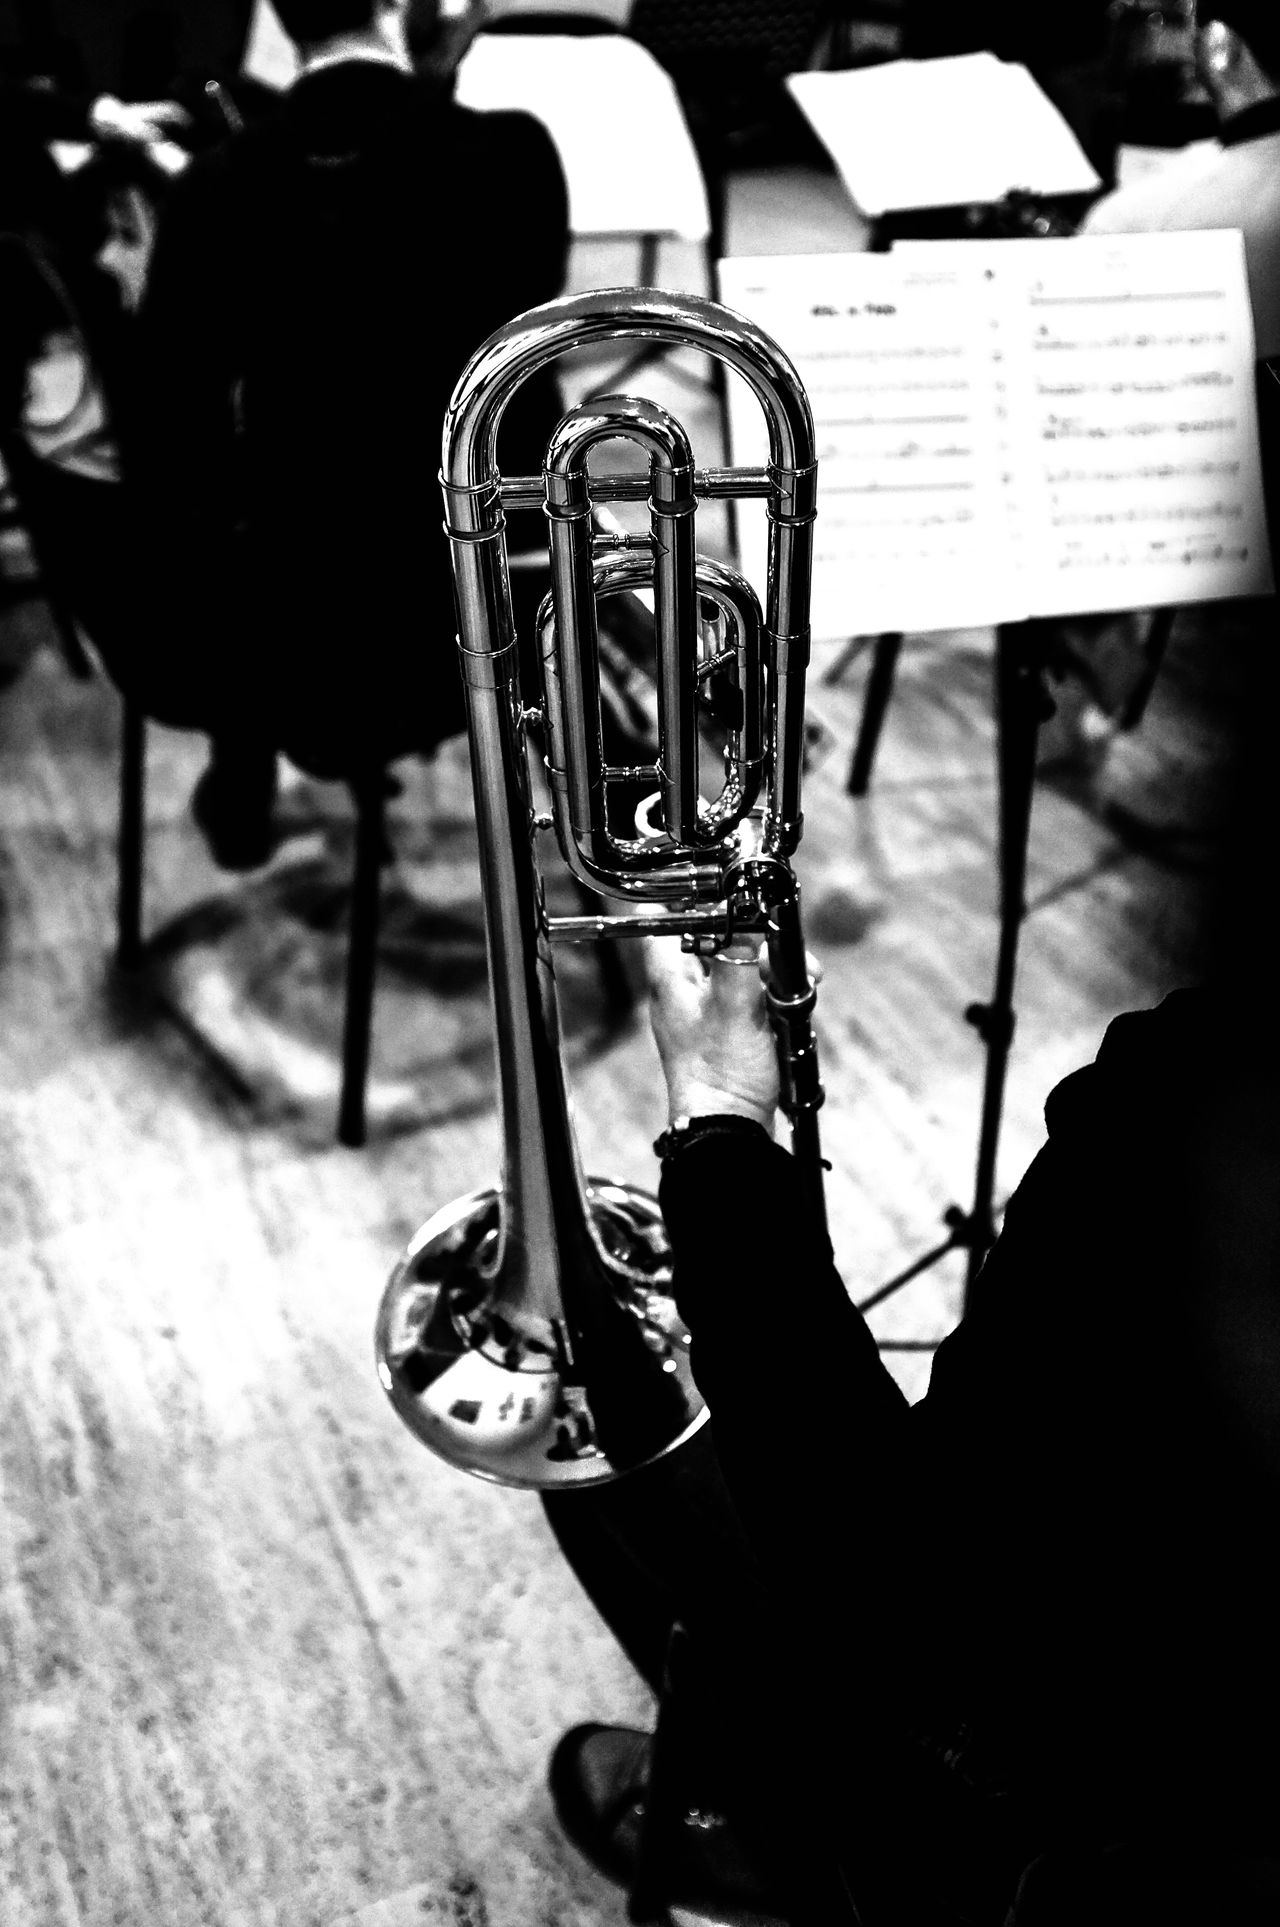 Jazz Jazzband Trombone Blackandwhite Shooting Music Musical Instruments Musician Black And White Photography Blackandwhitephotography EyeEm Best Shots - Black + White